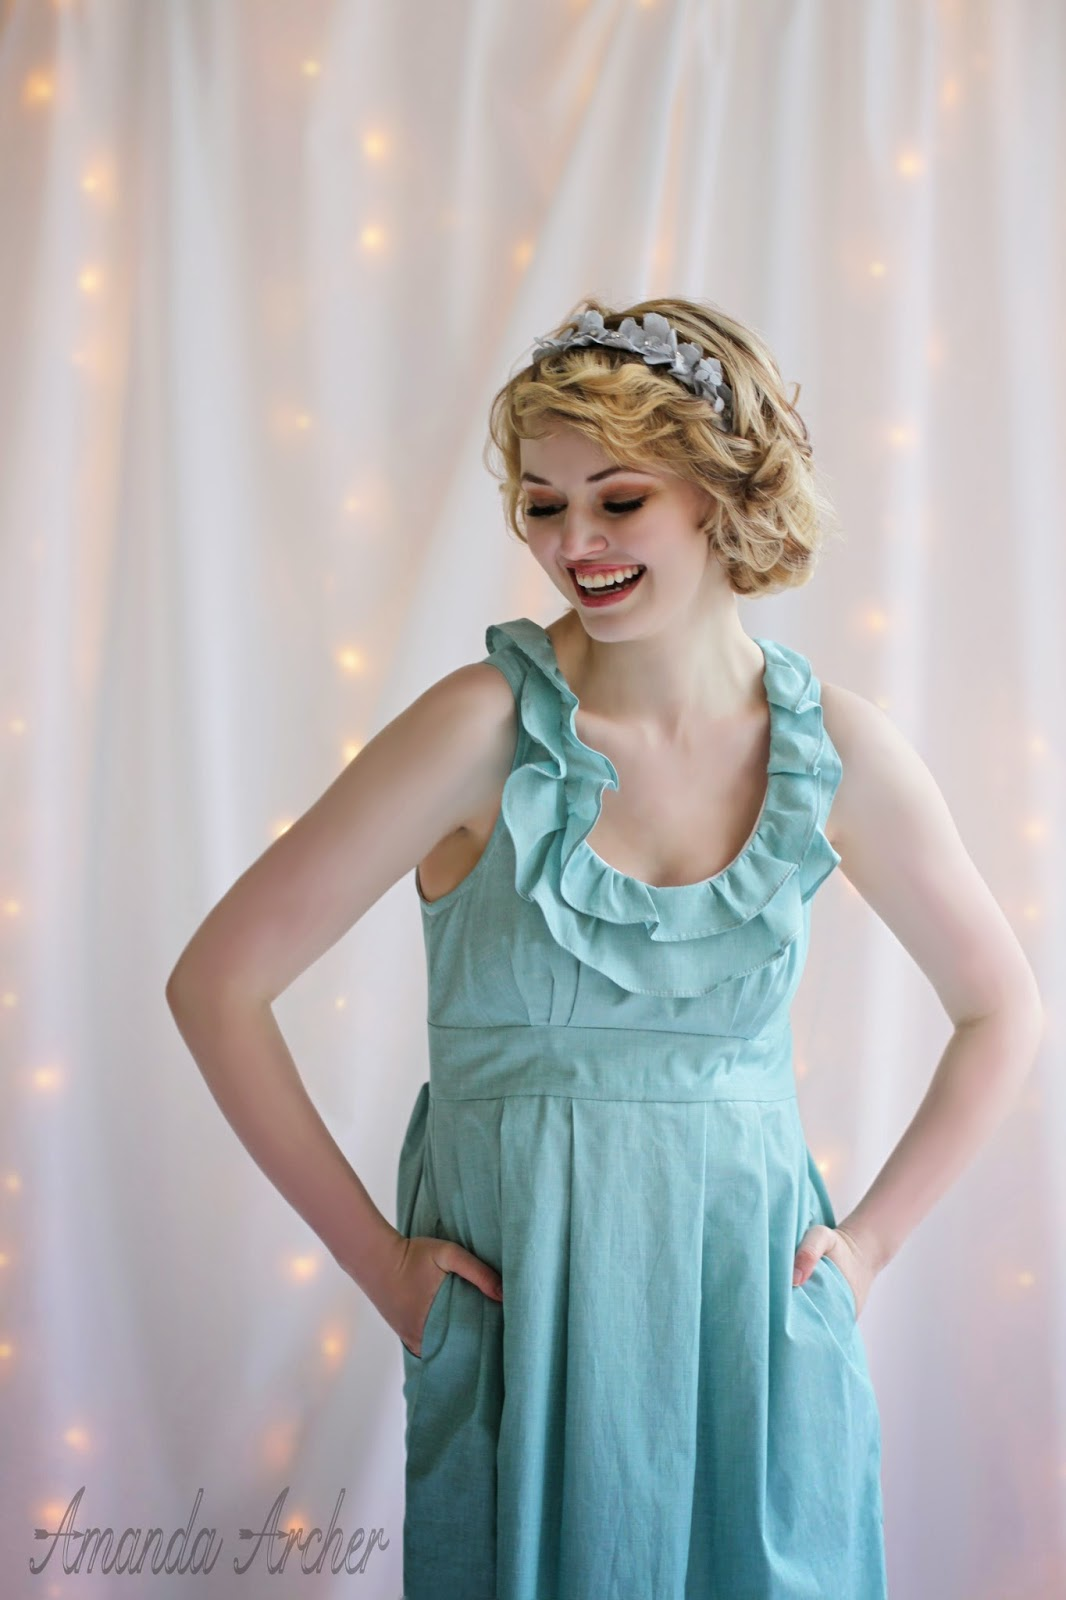 Independent designer lace dresses for bridesmaid or special occasion the ruffle collar dress is not lace but has been one of my top bridesmaid dress styles over the past few year so i had to include it in this photo shoot ombrellifo Gallery